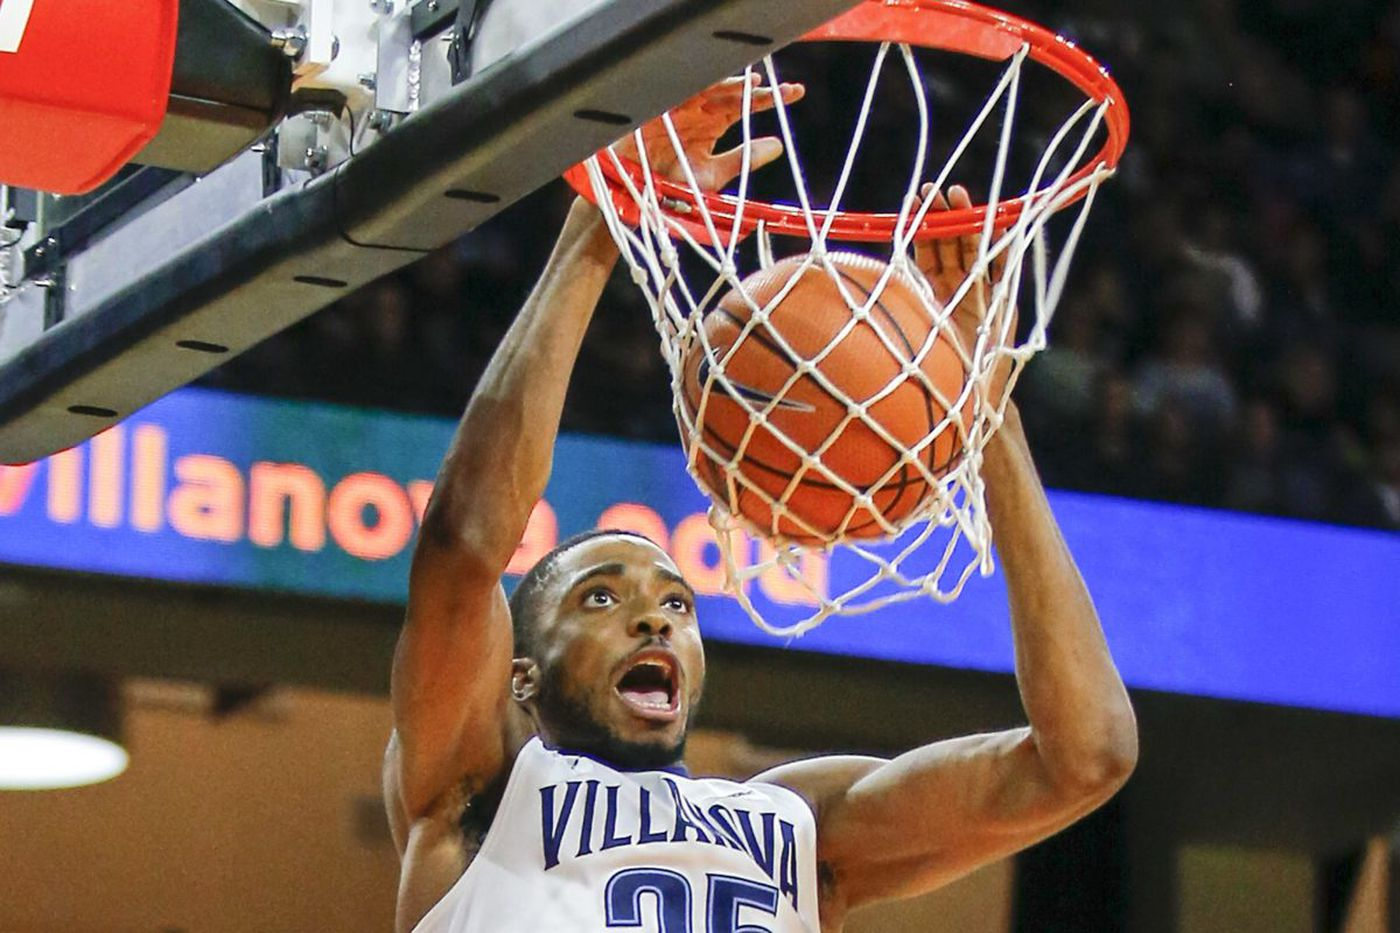 Villanova basketball cruises past Lafayette in last tune-up game